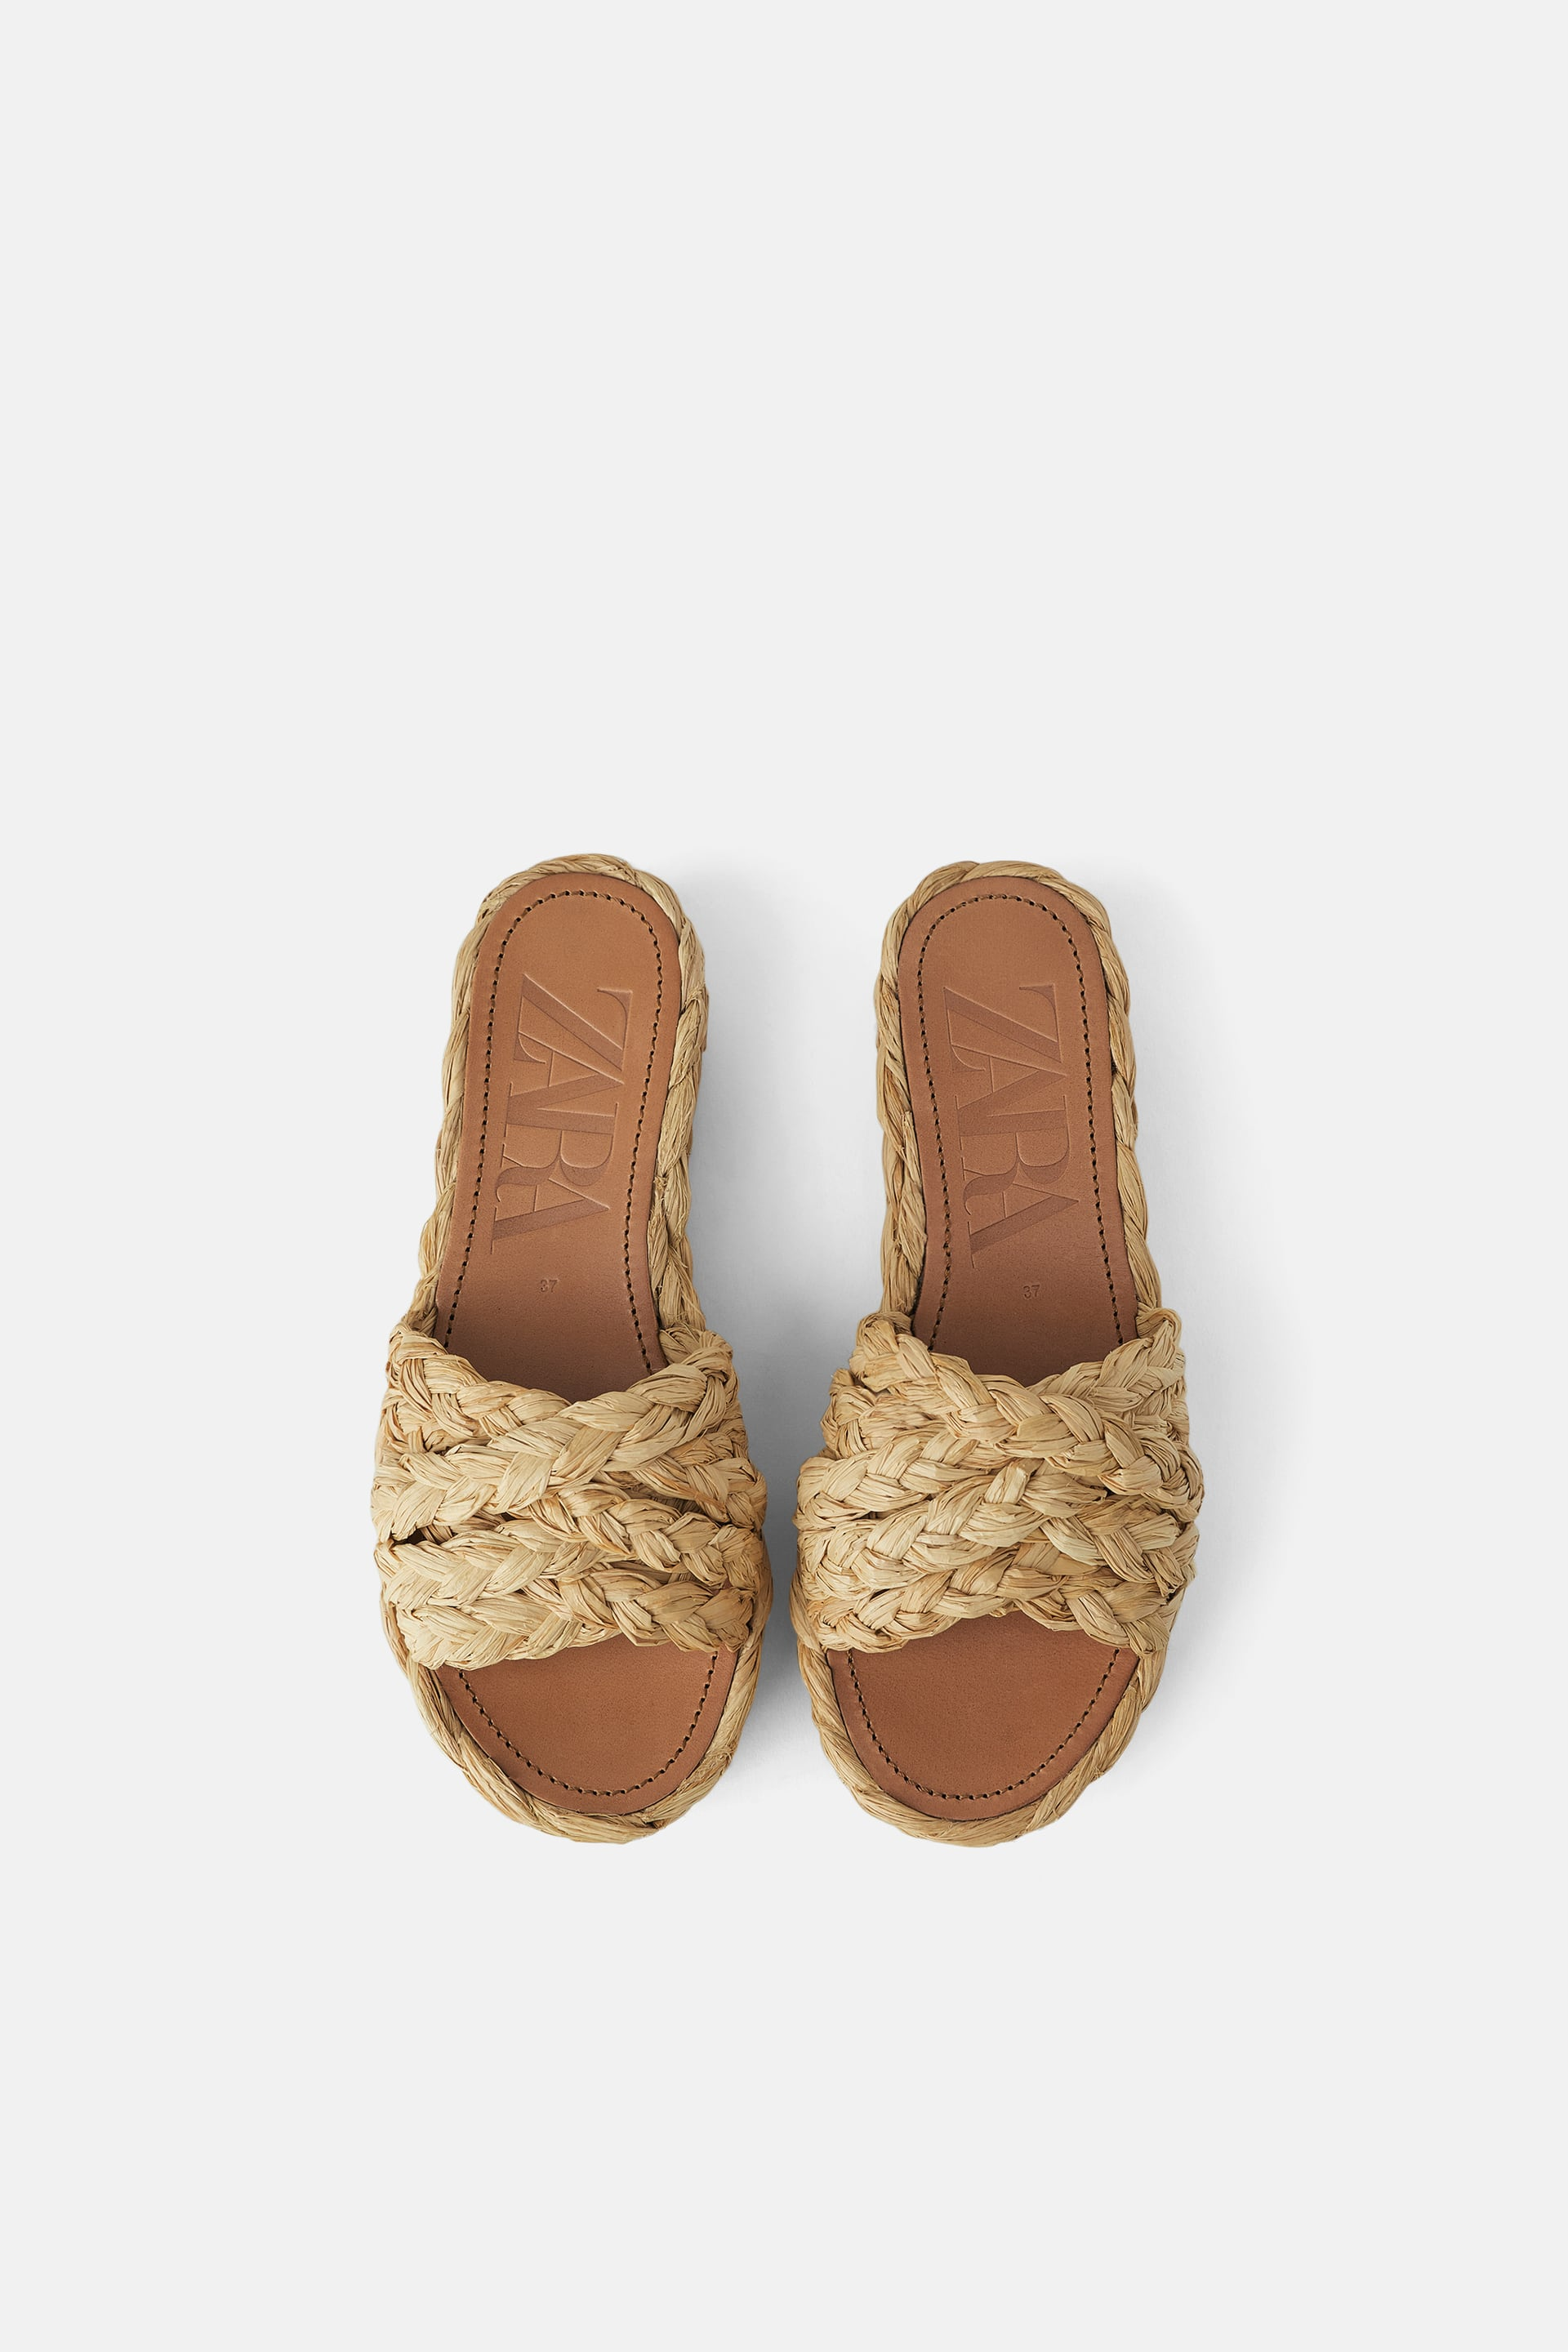 ac7bf0c5cb NATURAL RAFFIA PLATFORM WEDGES - MUM-WOMAN-CORNER SHOPS | ZARA Turkey